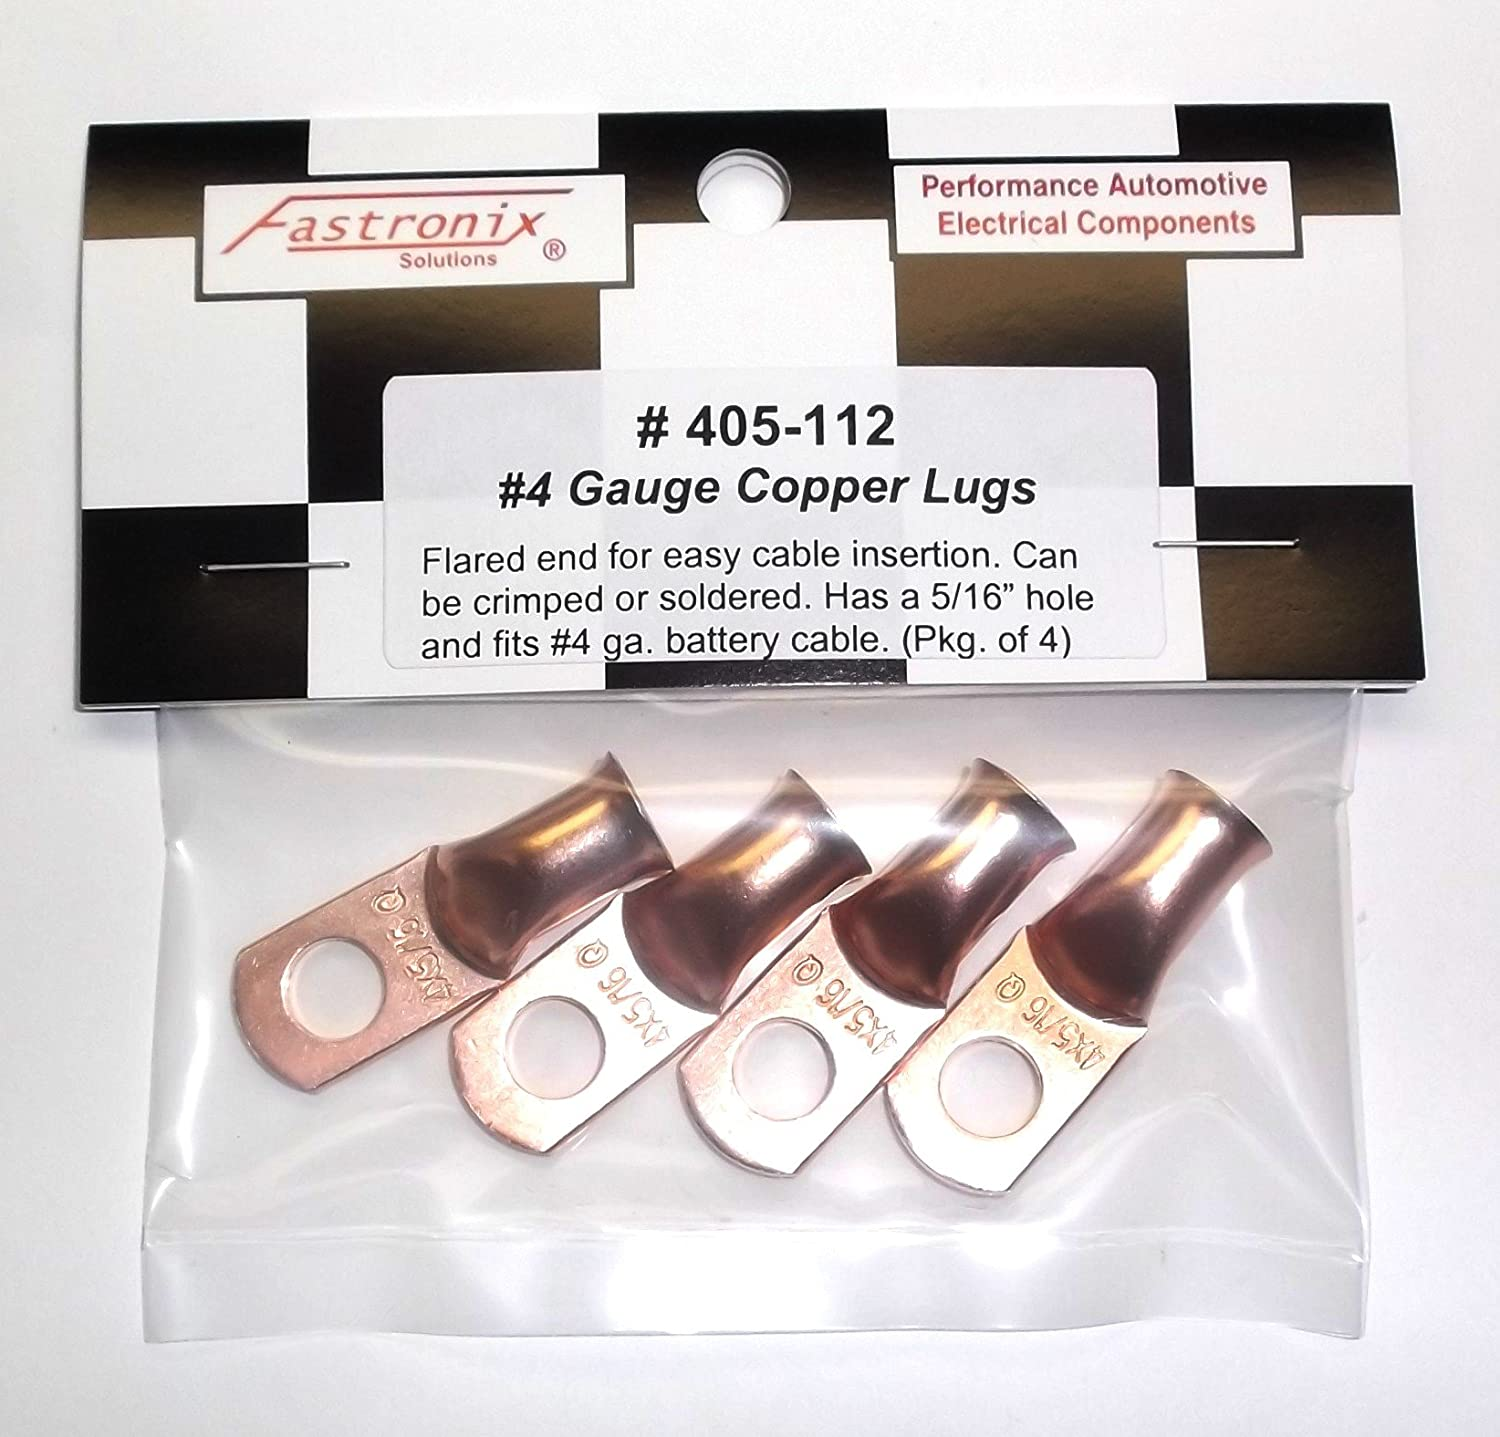 Fastronix Quality Copper Battery Terminal Lugs 4 Pack 5//16 2 Gauge